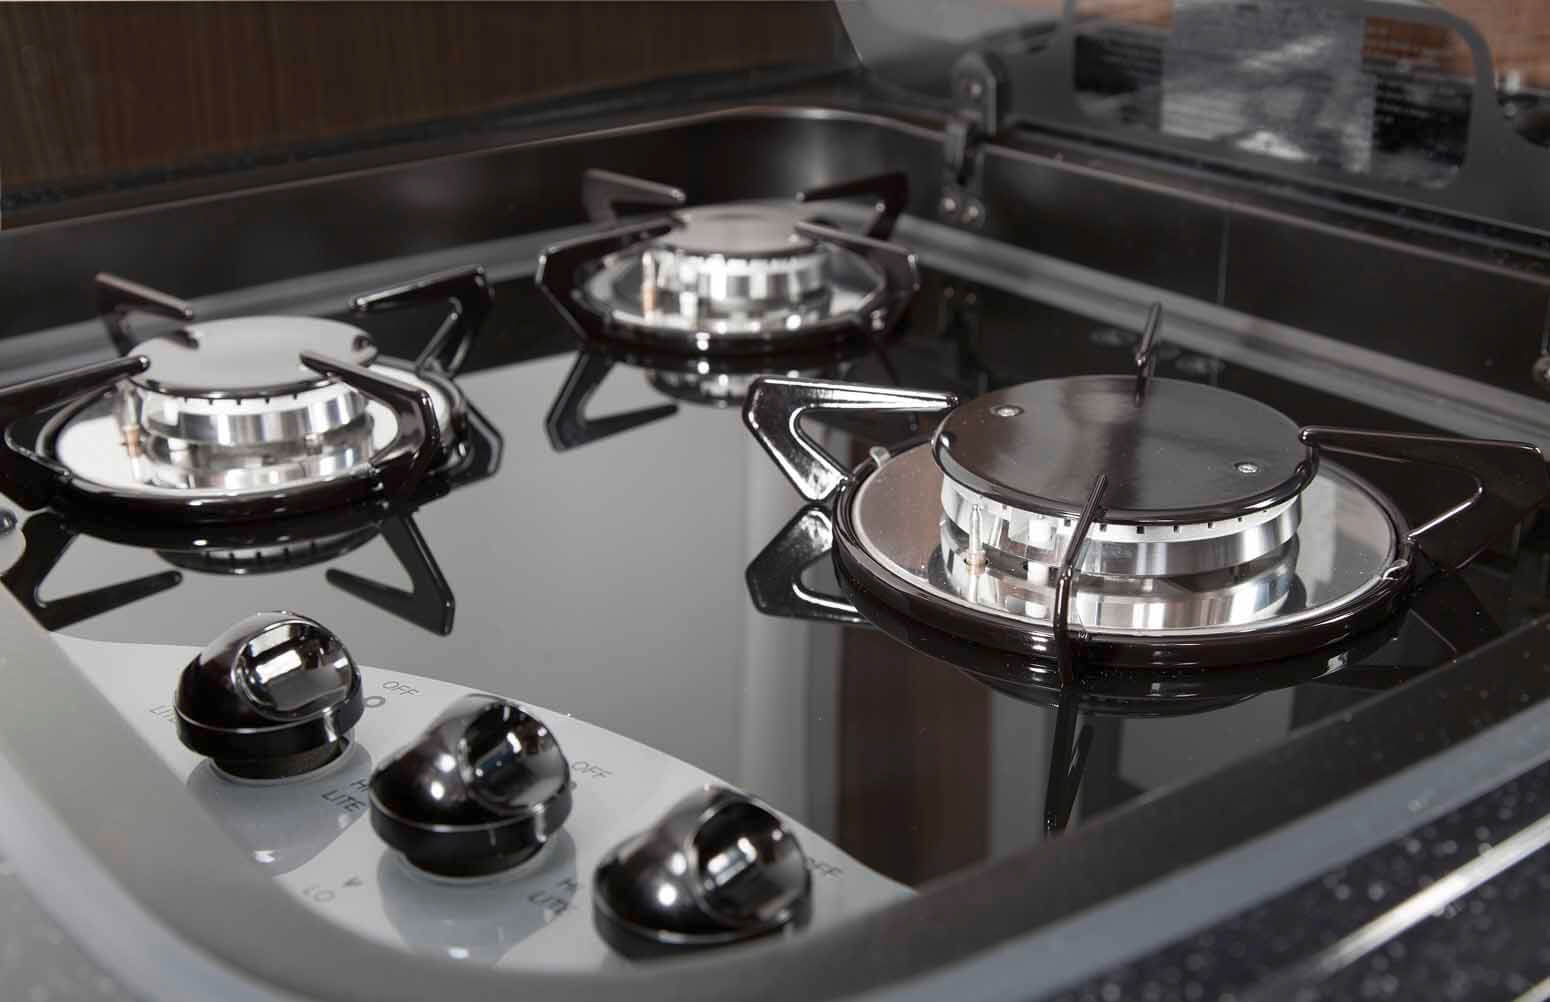 Massive gas stove with powerful burners and glass-covered steel surface